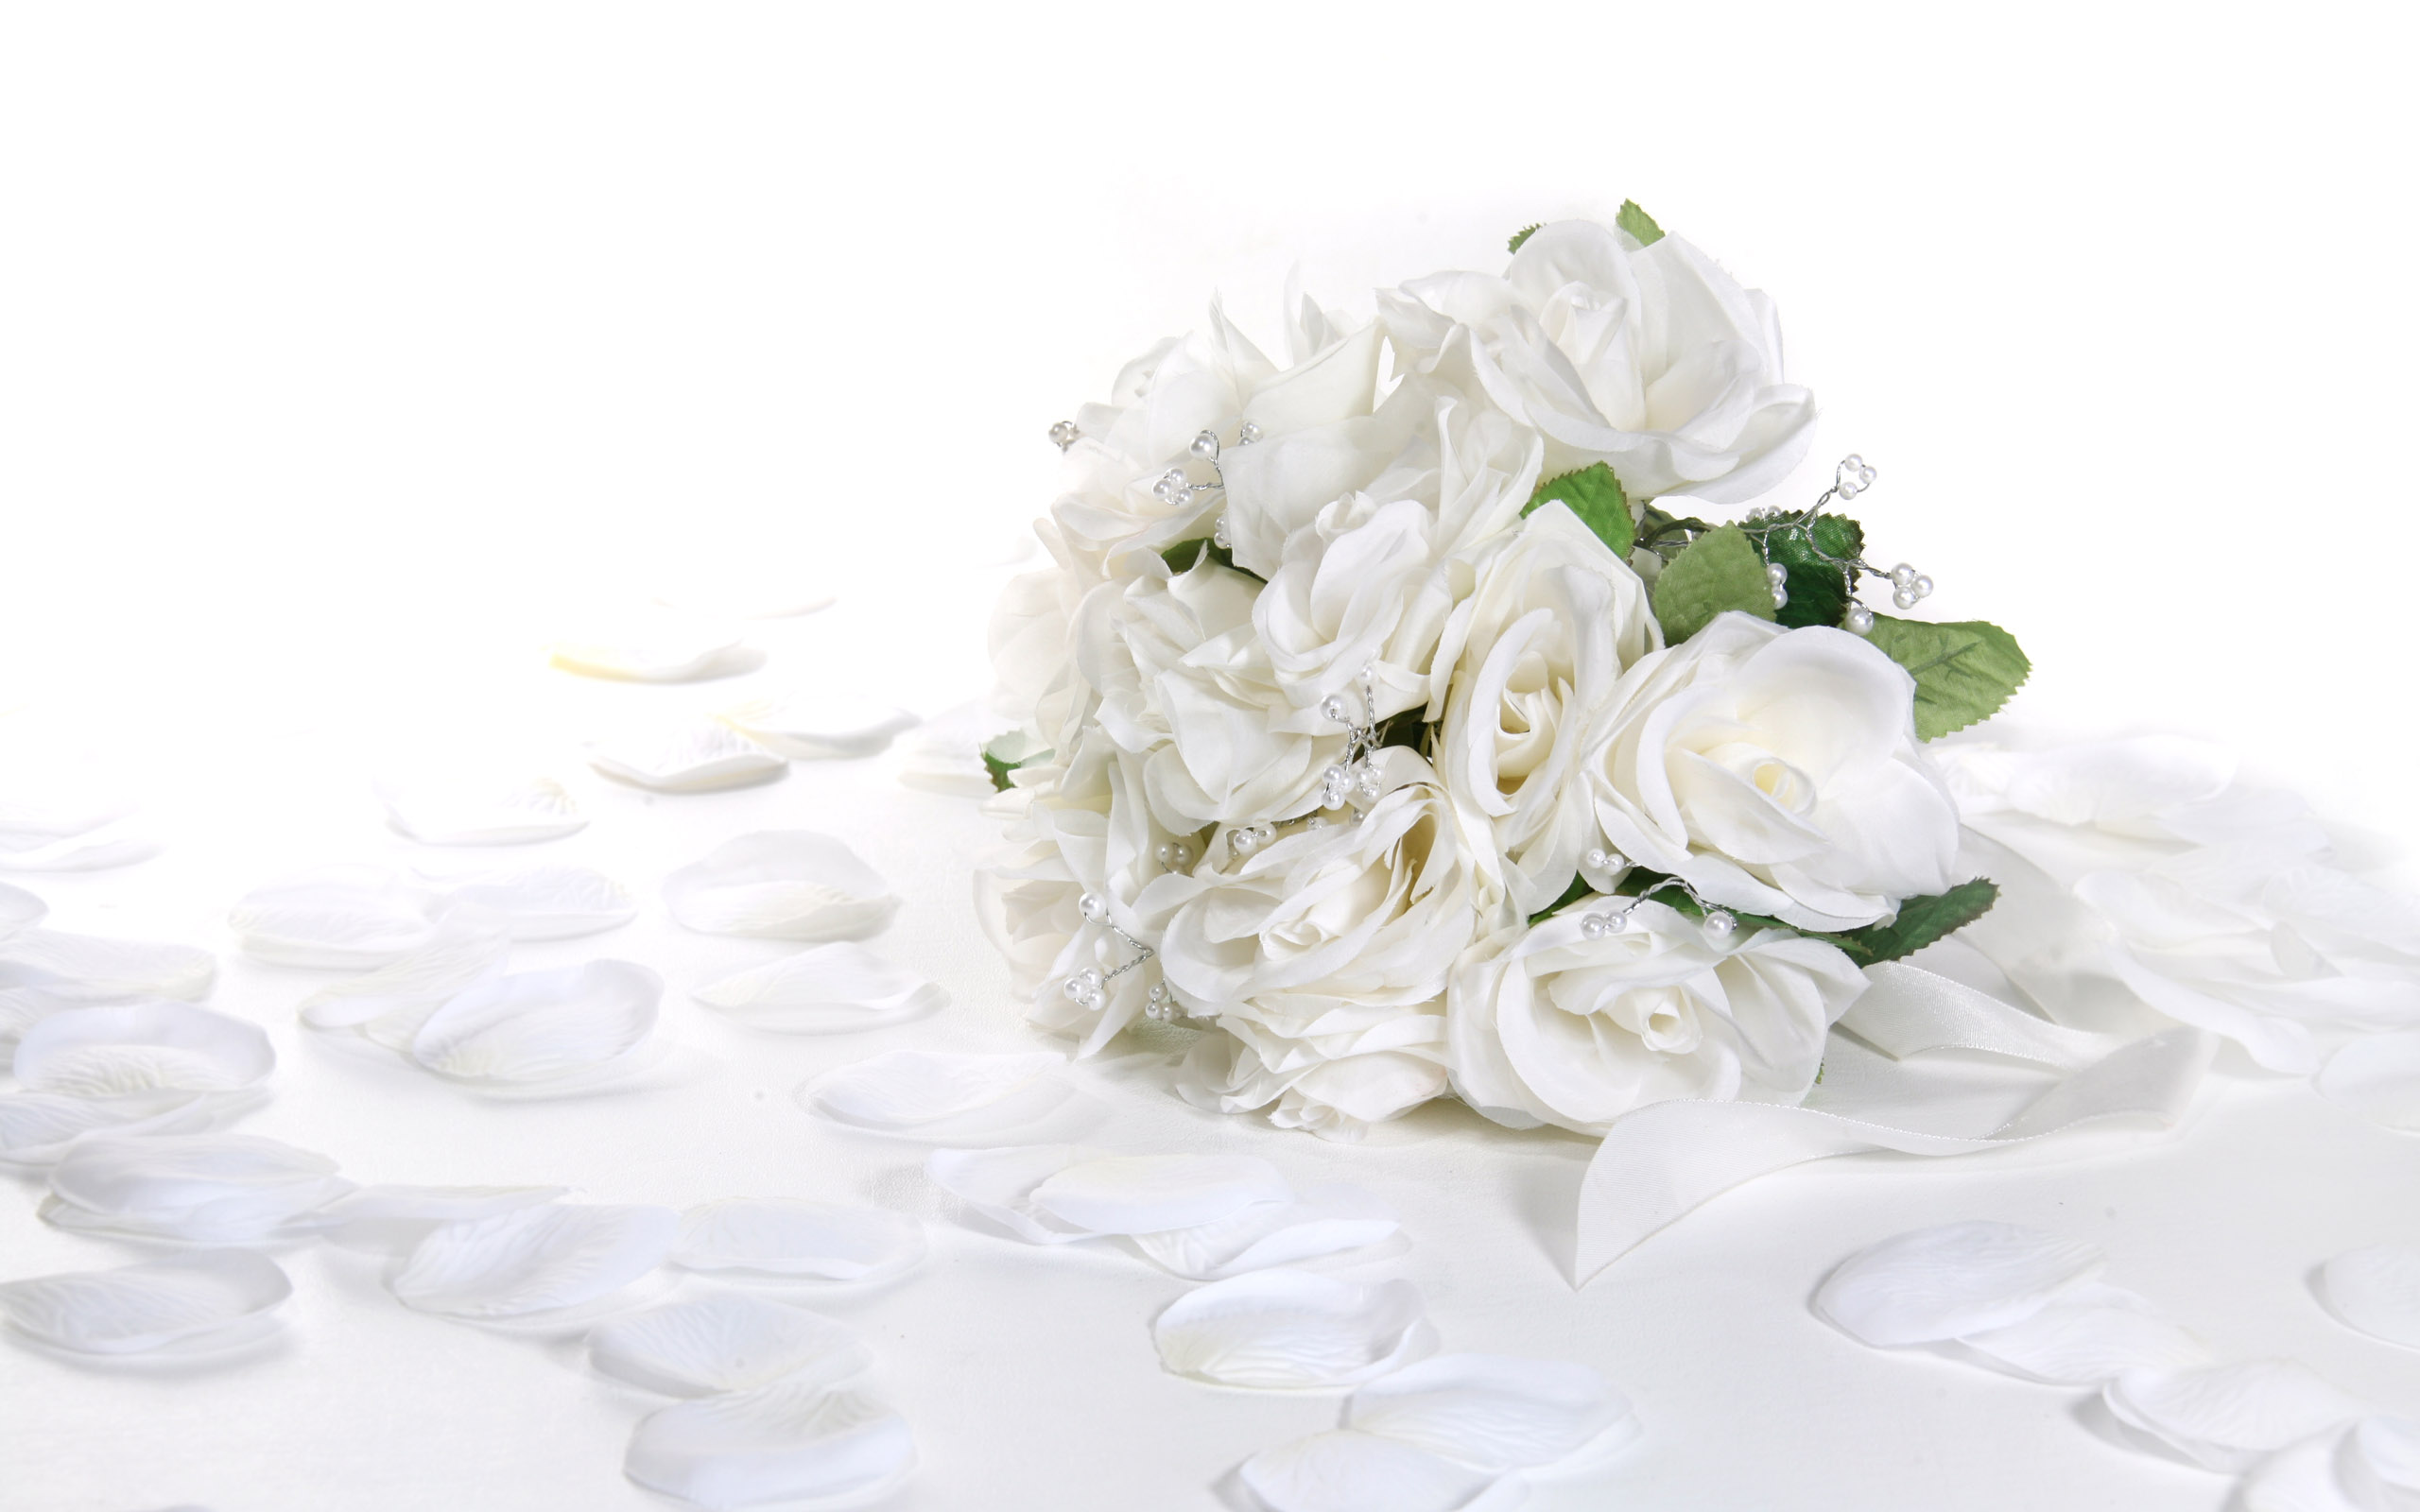 White Images White Rose Hd Wallpaper And Background Photos 34727335